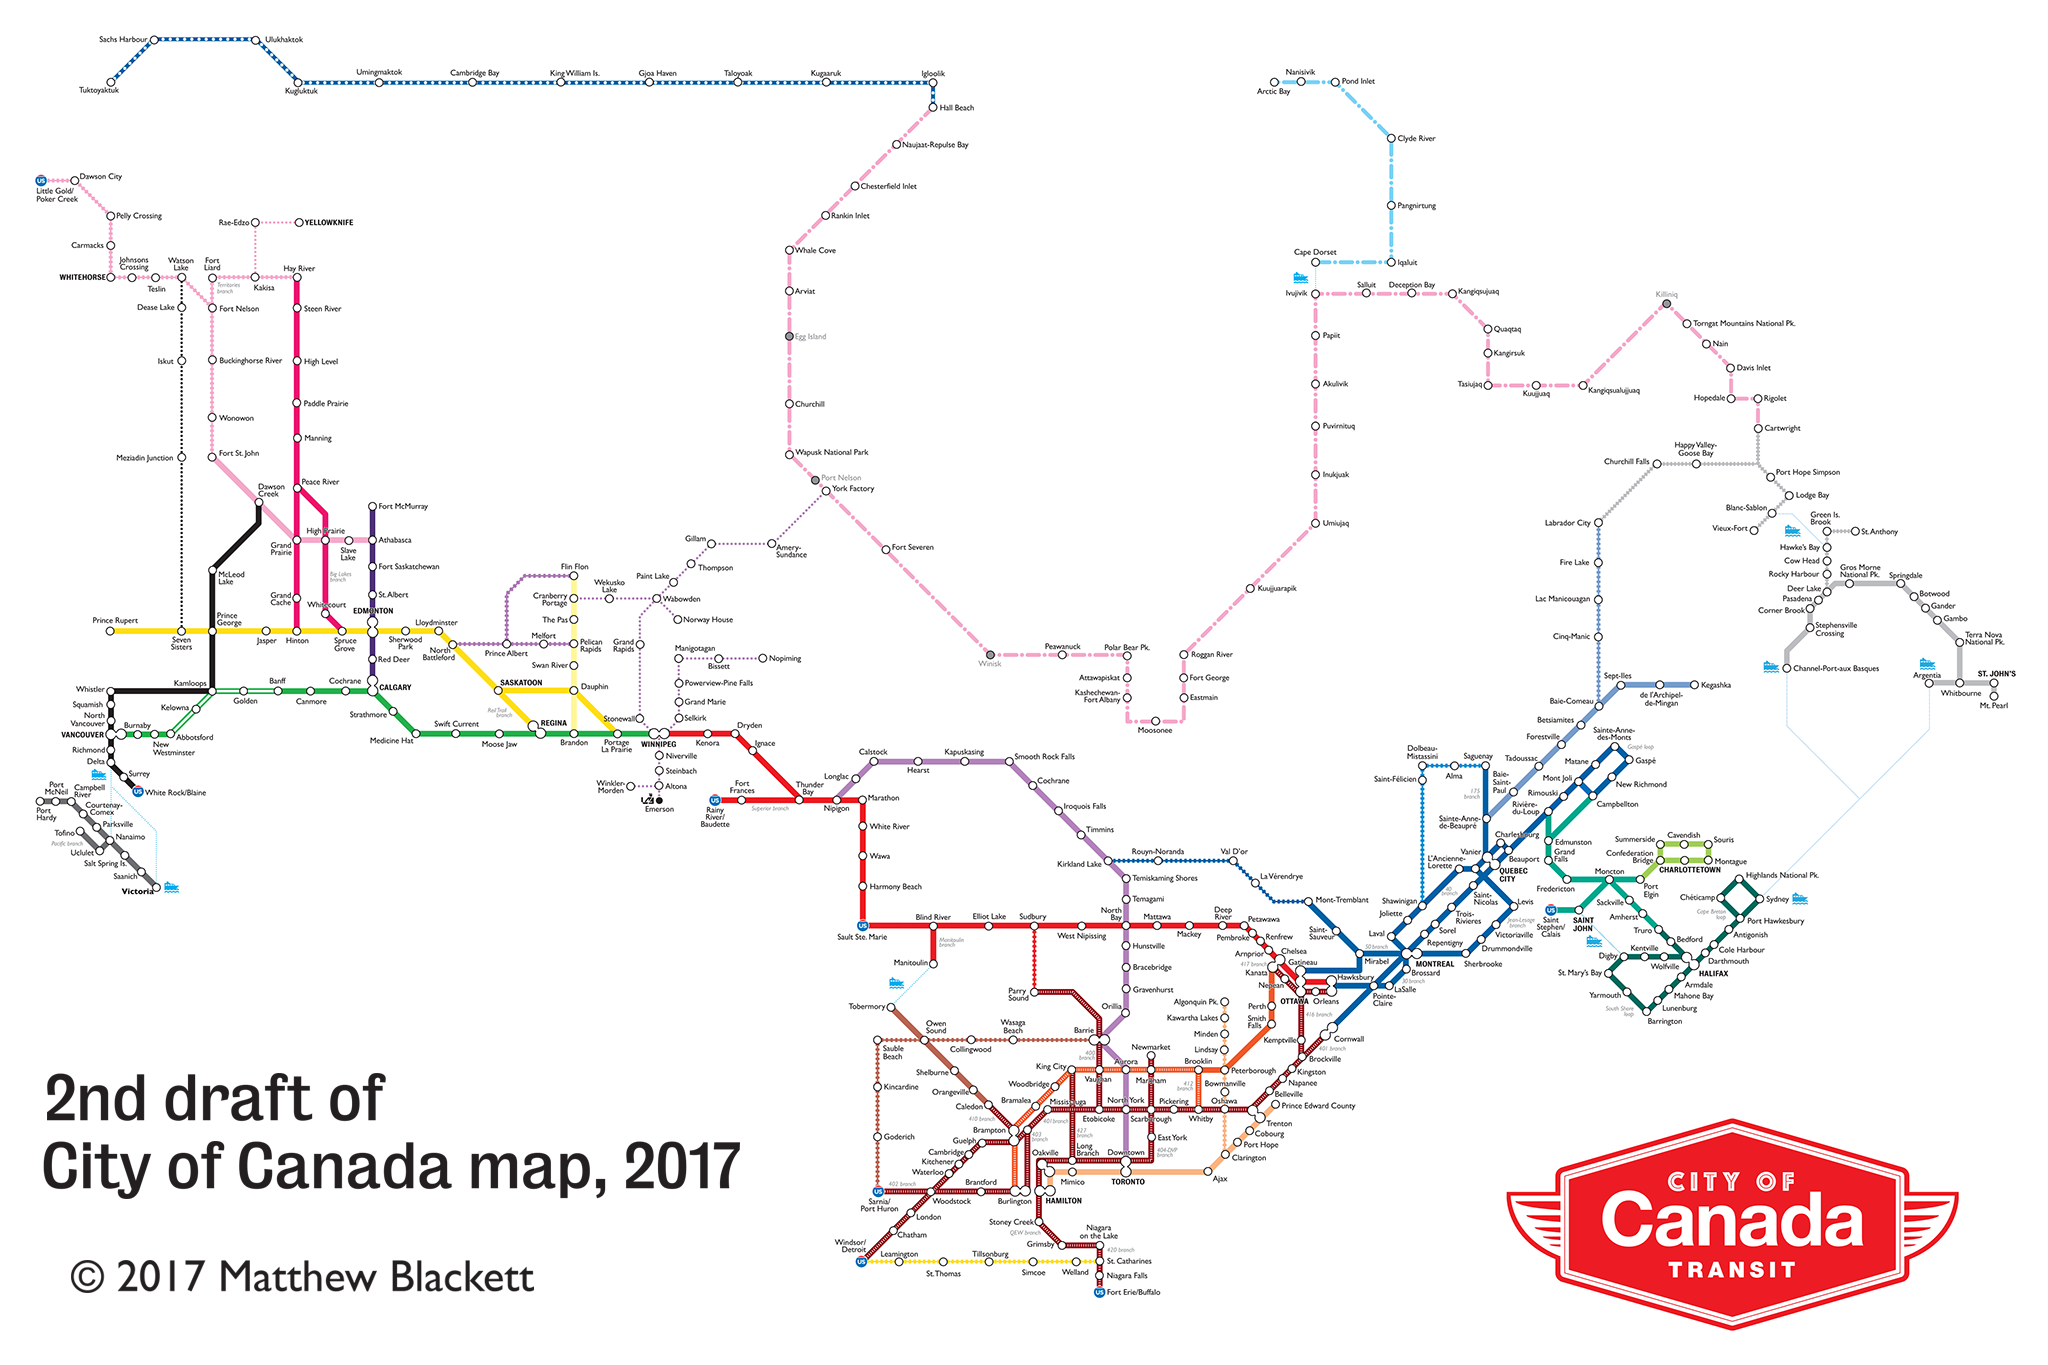 City Map Of Canada.A Closer Look At The City Of Canada Transit Map Spacing National